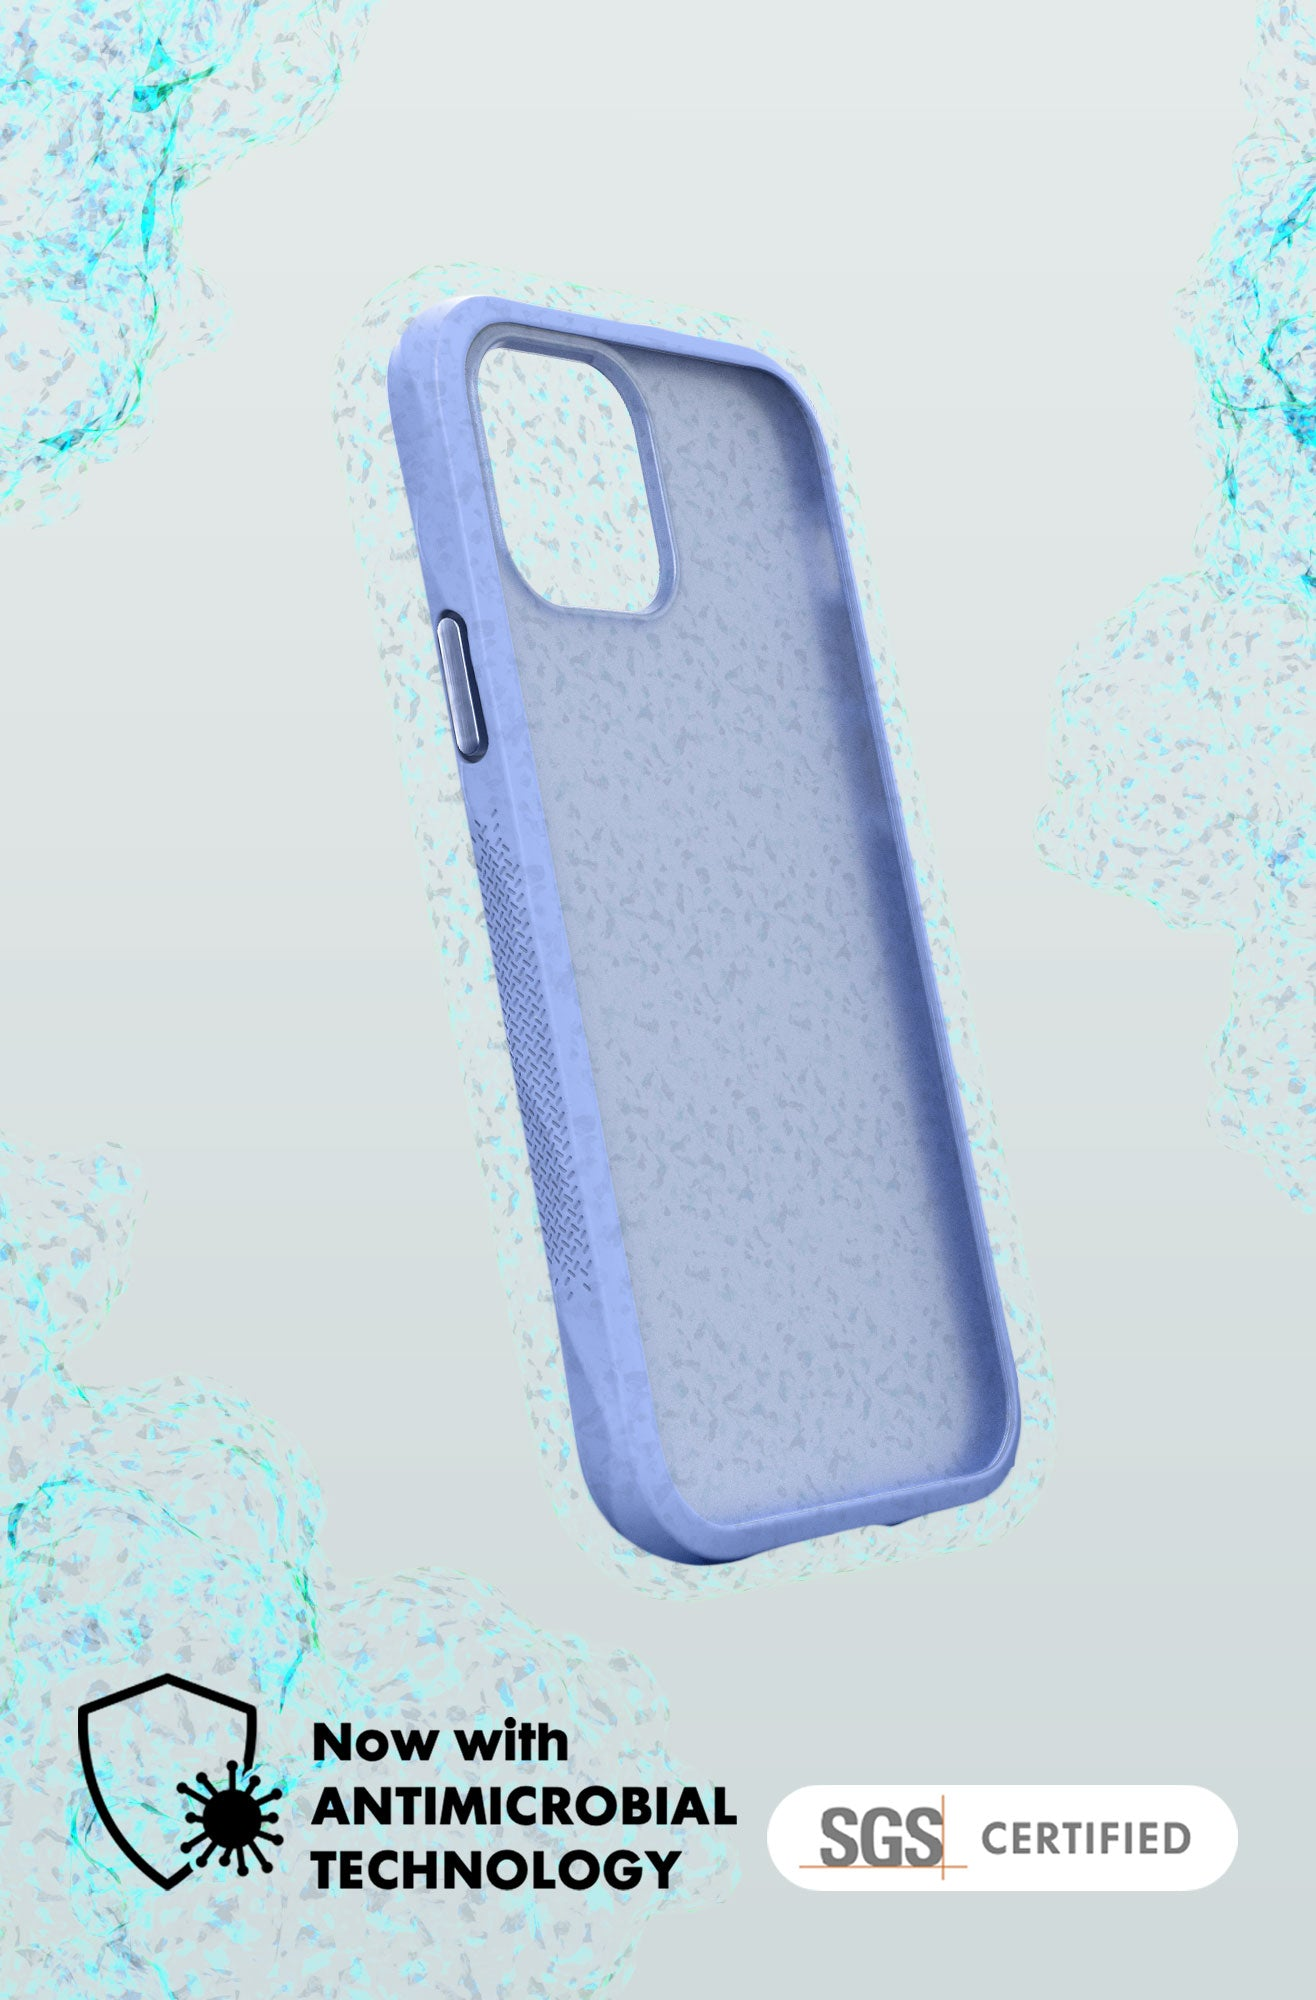 LAUT - CRYSTAL MATTER (IMPKT) 2.0 case for iPhone 12 series